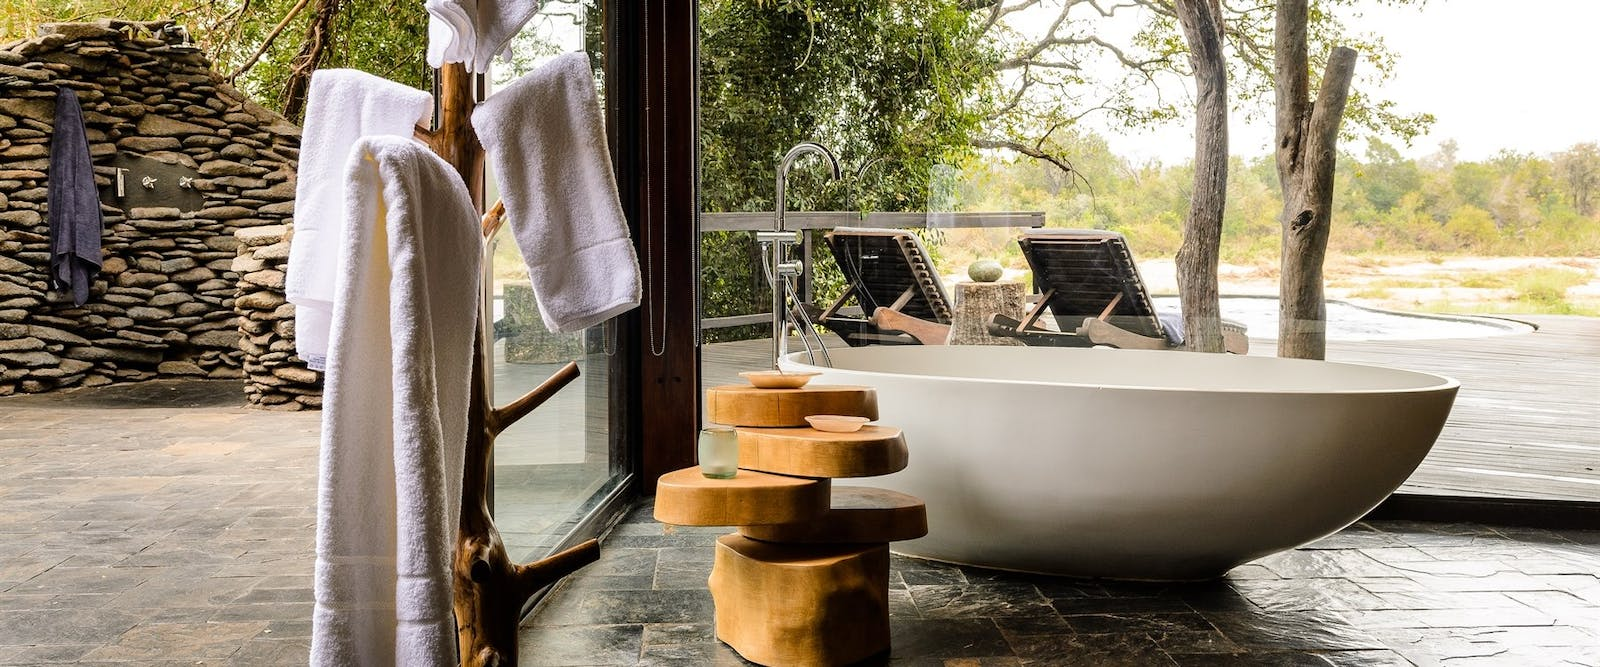 Outdoor Bath at Singita